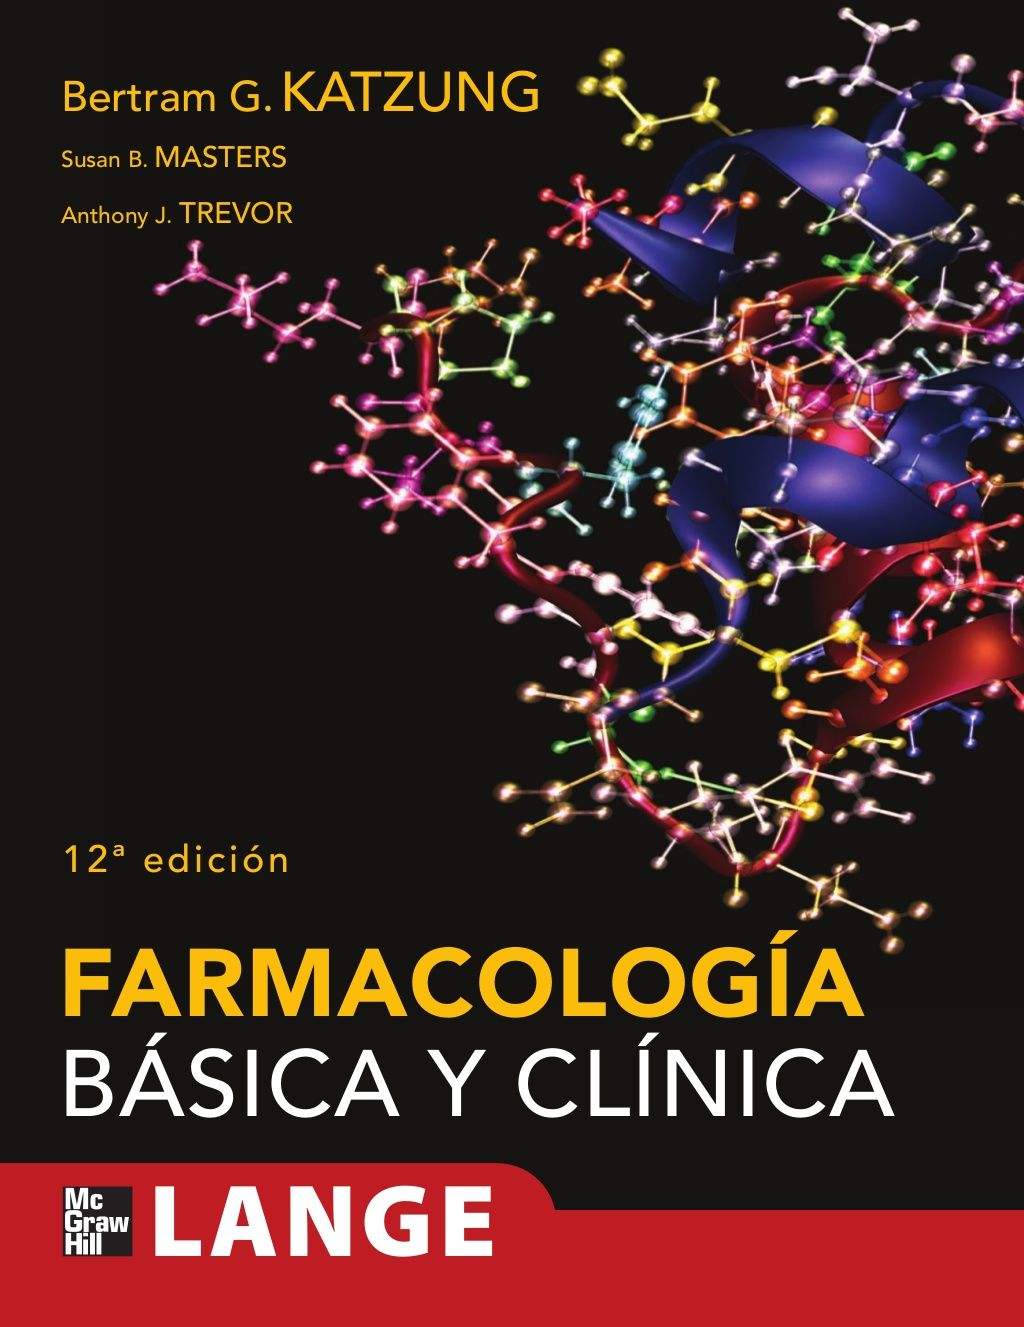 Farmacologiasicayinicakatzung 12aedicion by karen torres farmacologiasicayinicakatzung 12aedicion by karen torres fandeluxe Images